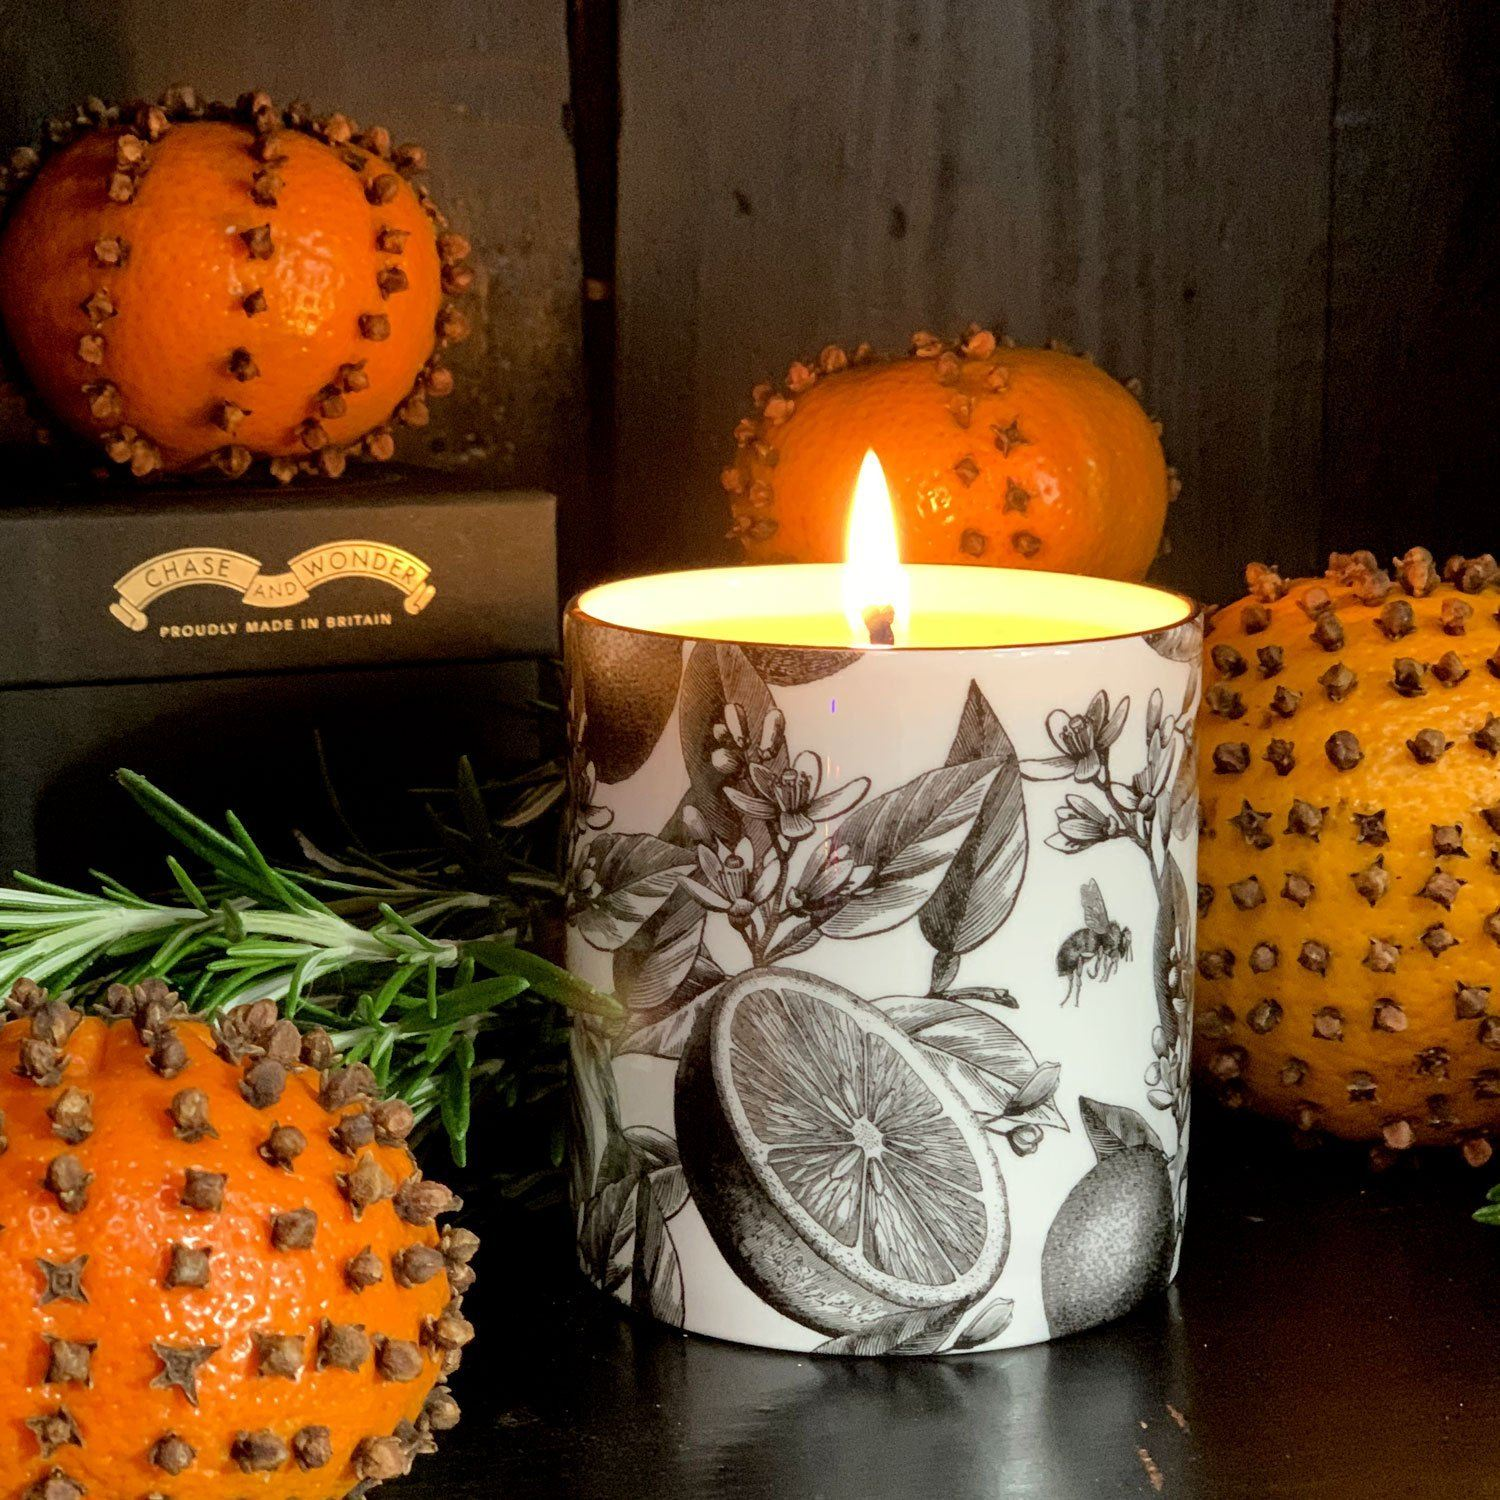 The Orangery Ceramic Candle - Chase and Wonder - Proudly Made in Britain